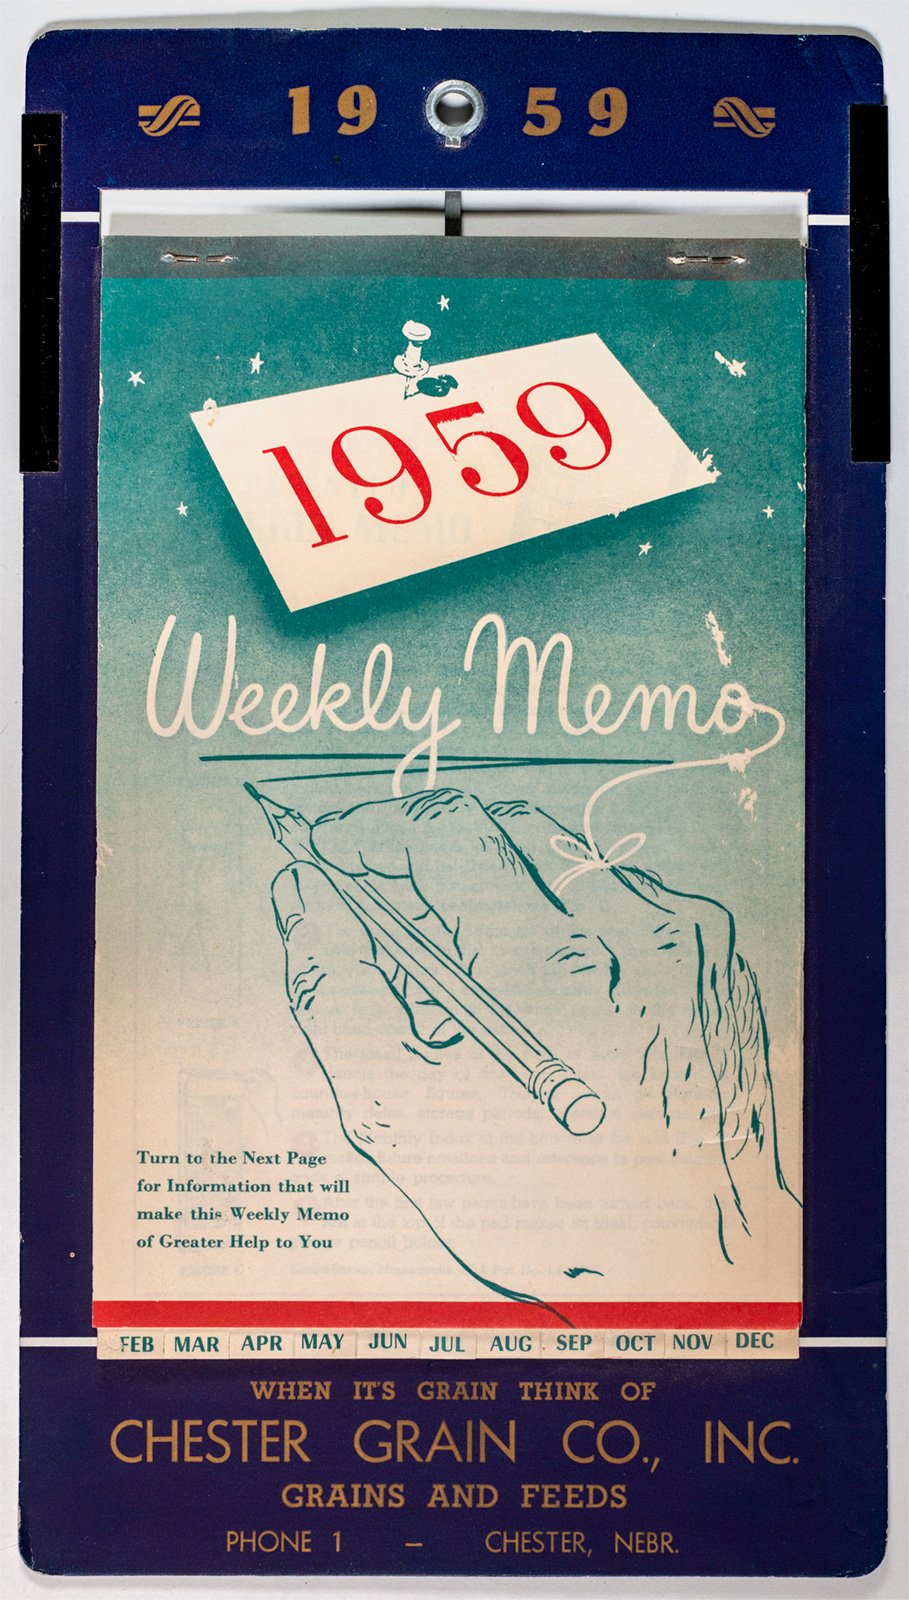 1959 Chester Grain Co Weekly Memo Pad Image